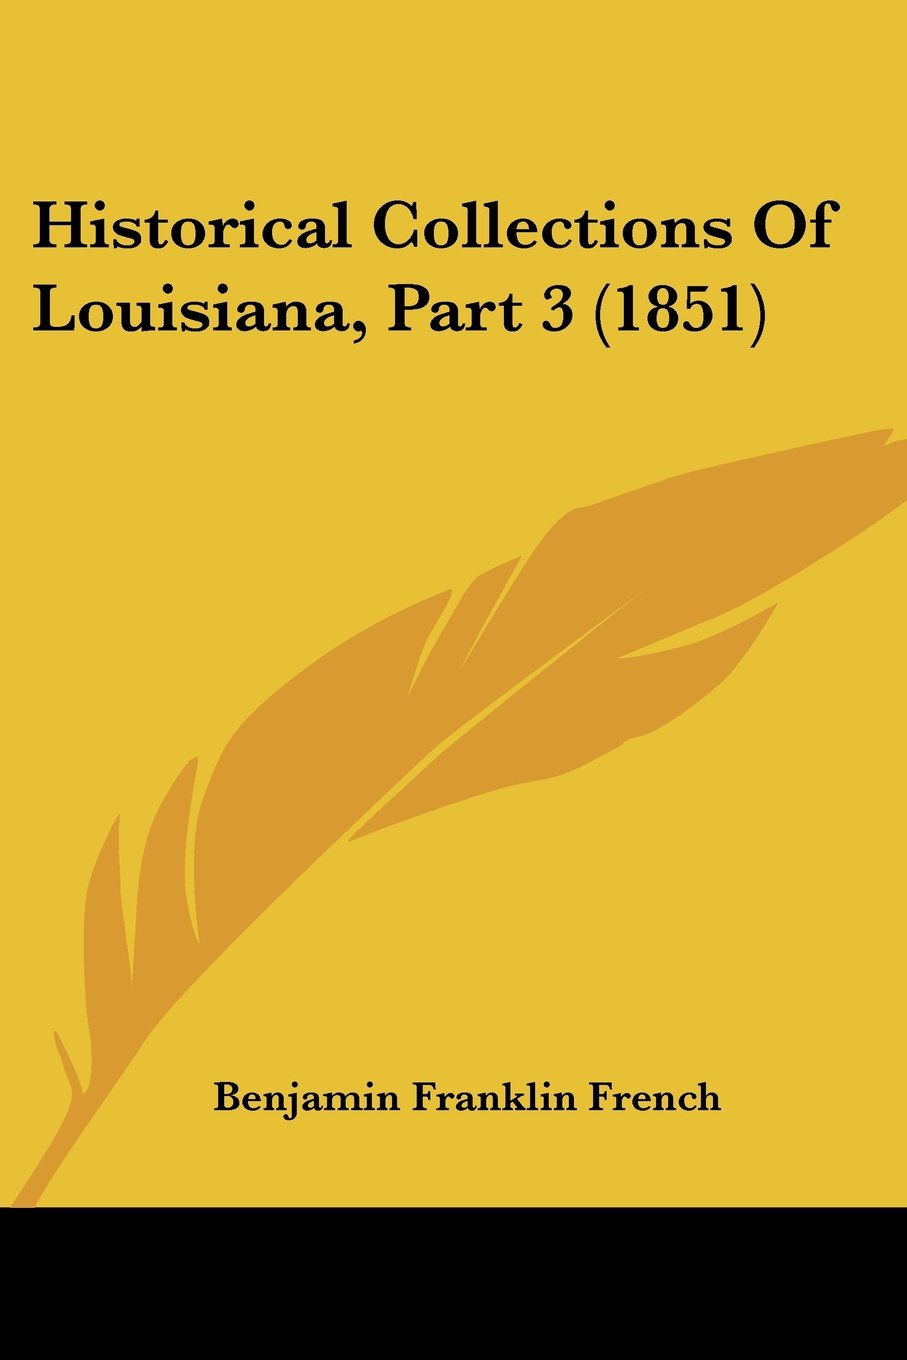 Historical Collections Of Louisiana, Part 3 (1851) Text fb2 book